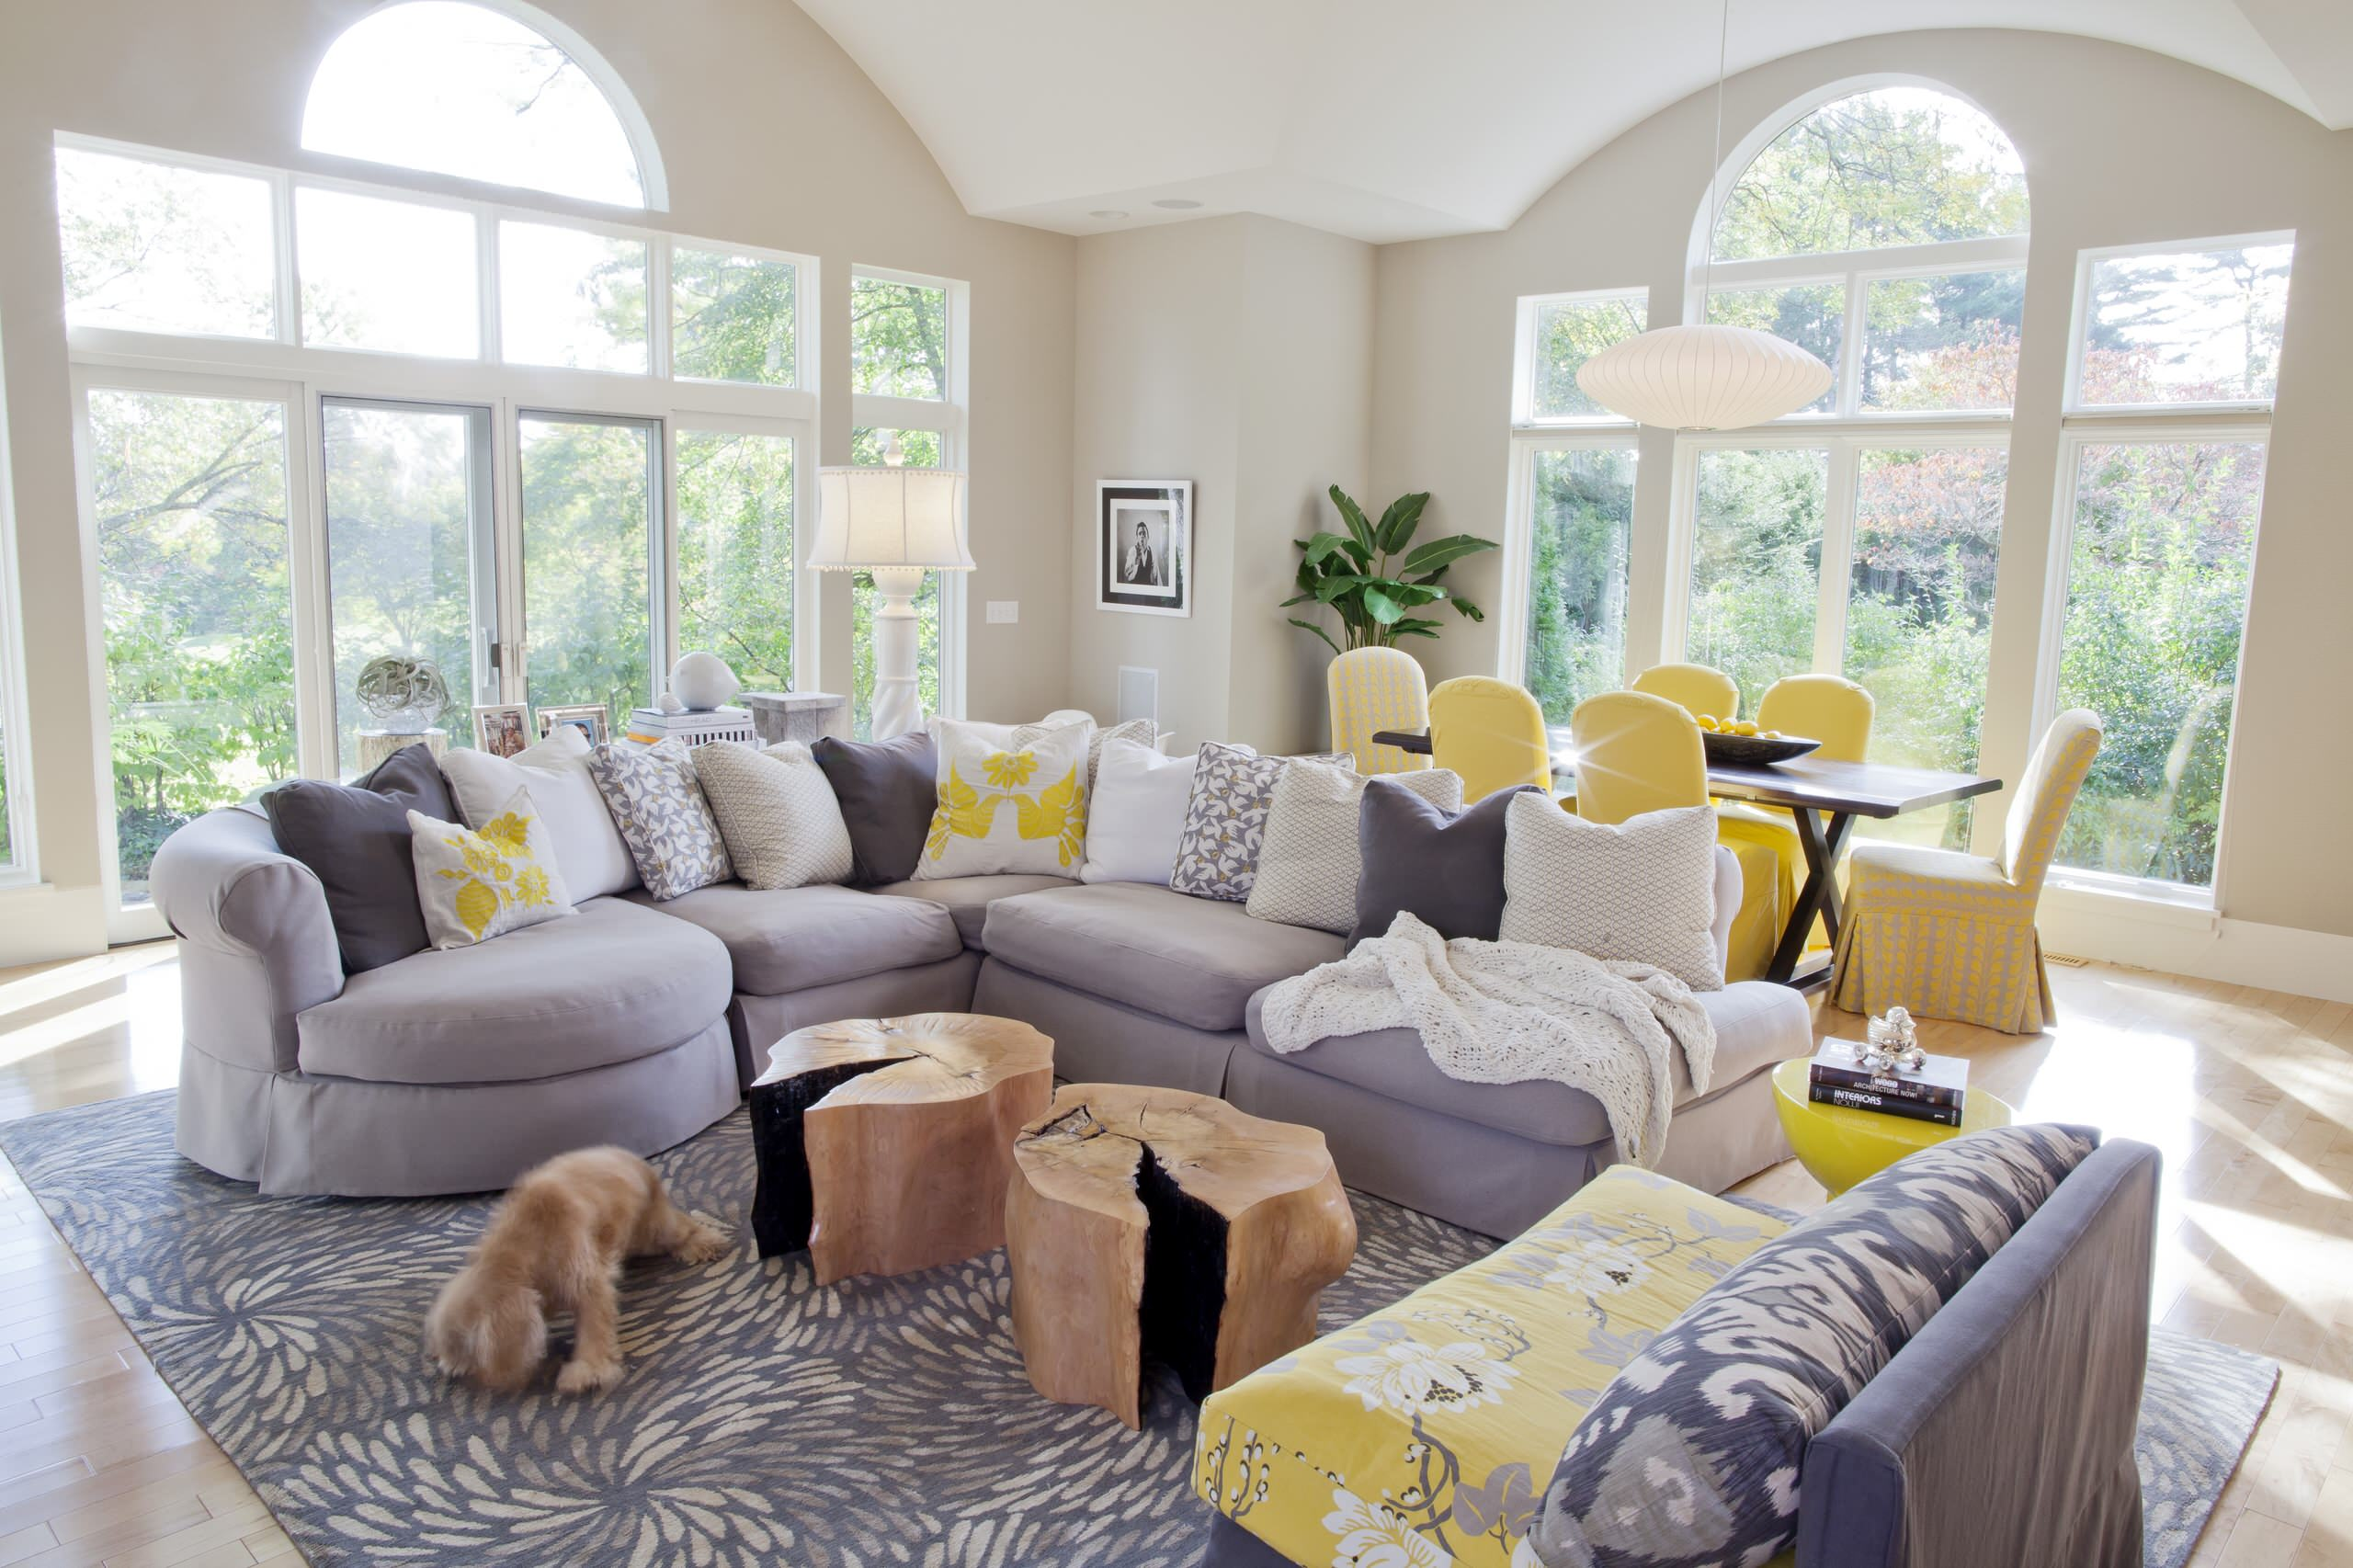 11 Most Stunning Grey And Yellow Living Room Ideas To Try This Summer – JimenezPhoto